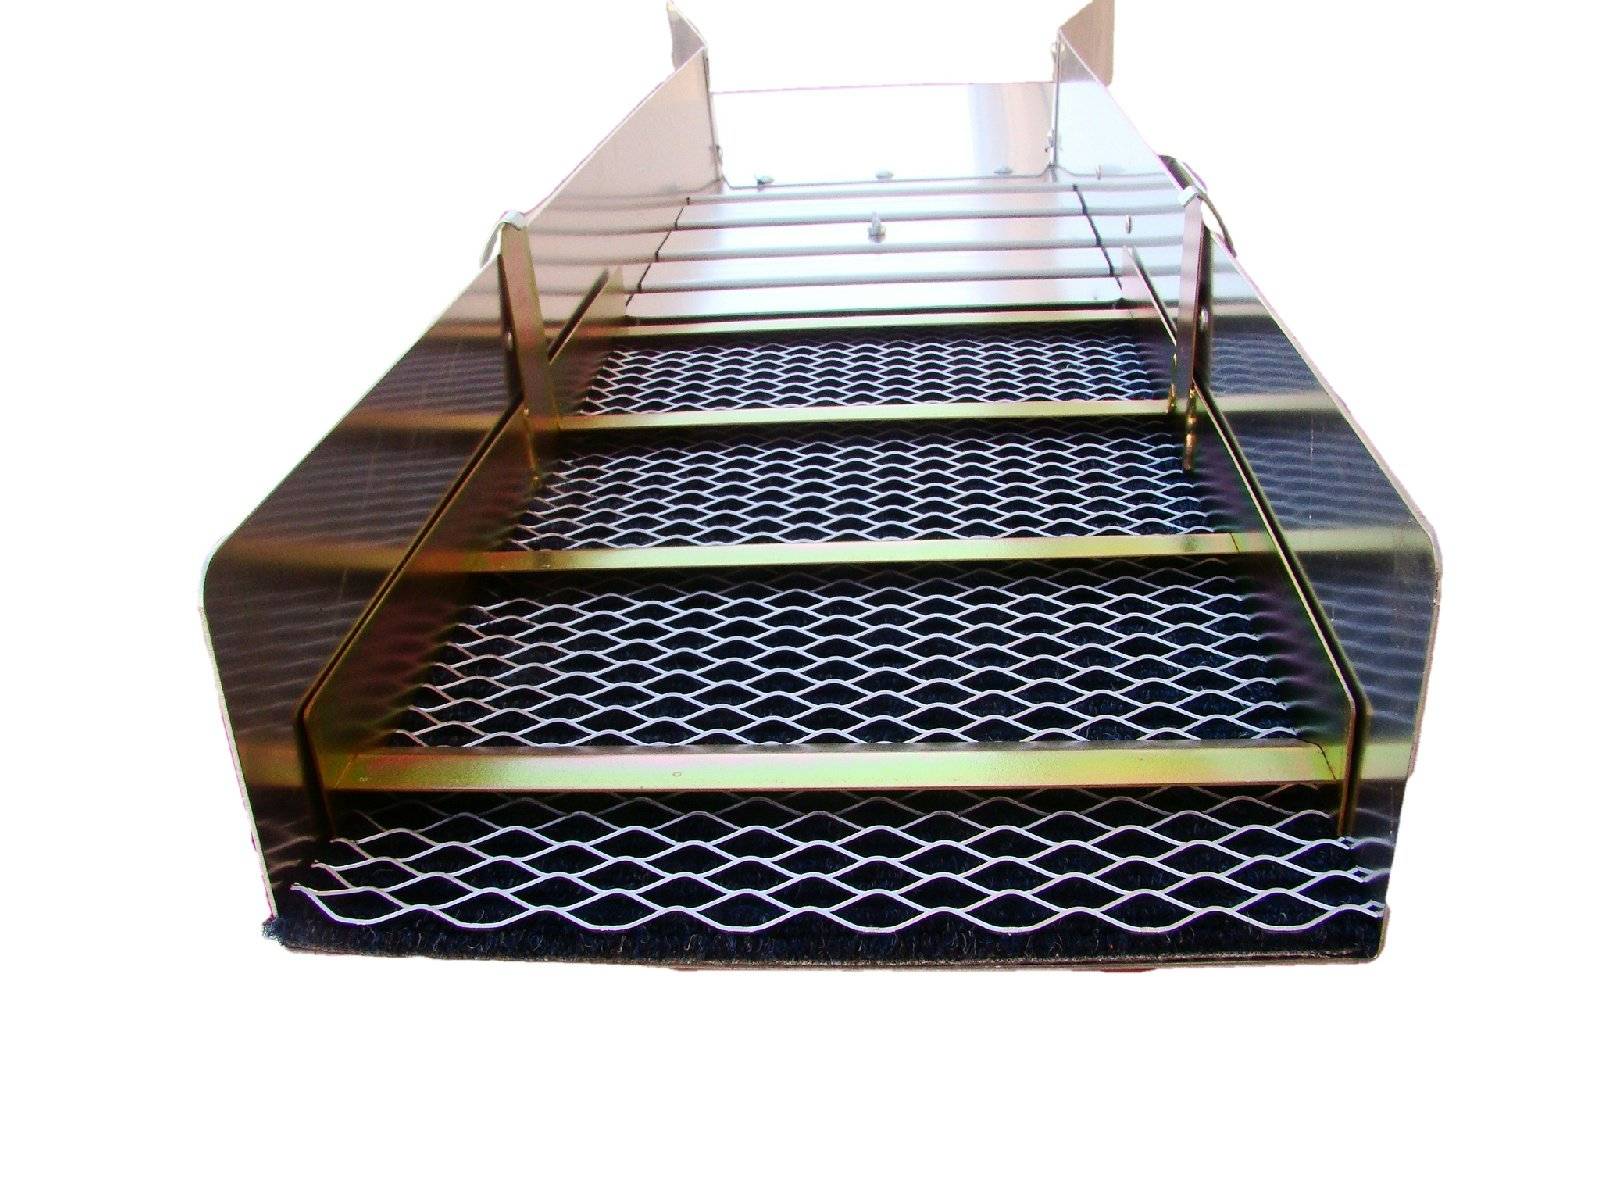 50'' Long Drop Riffle Sluice Box-17'' Wide Flair-With Handle Gold Mining Prospecting by Make Your Own Gold Bars (Image #5)